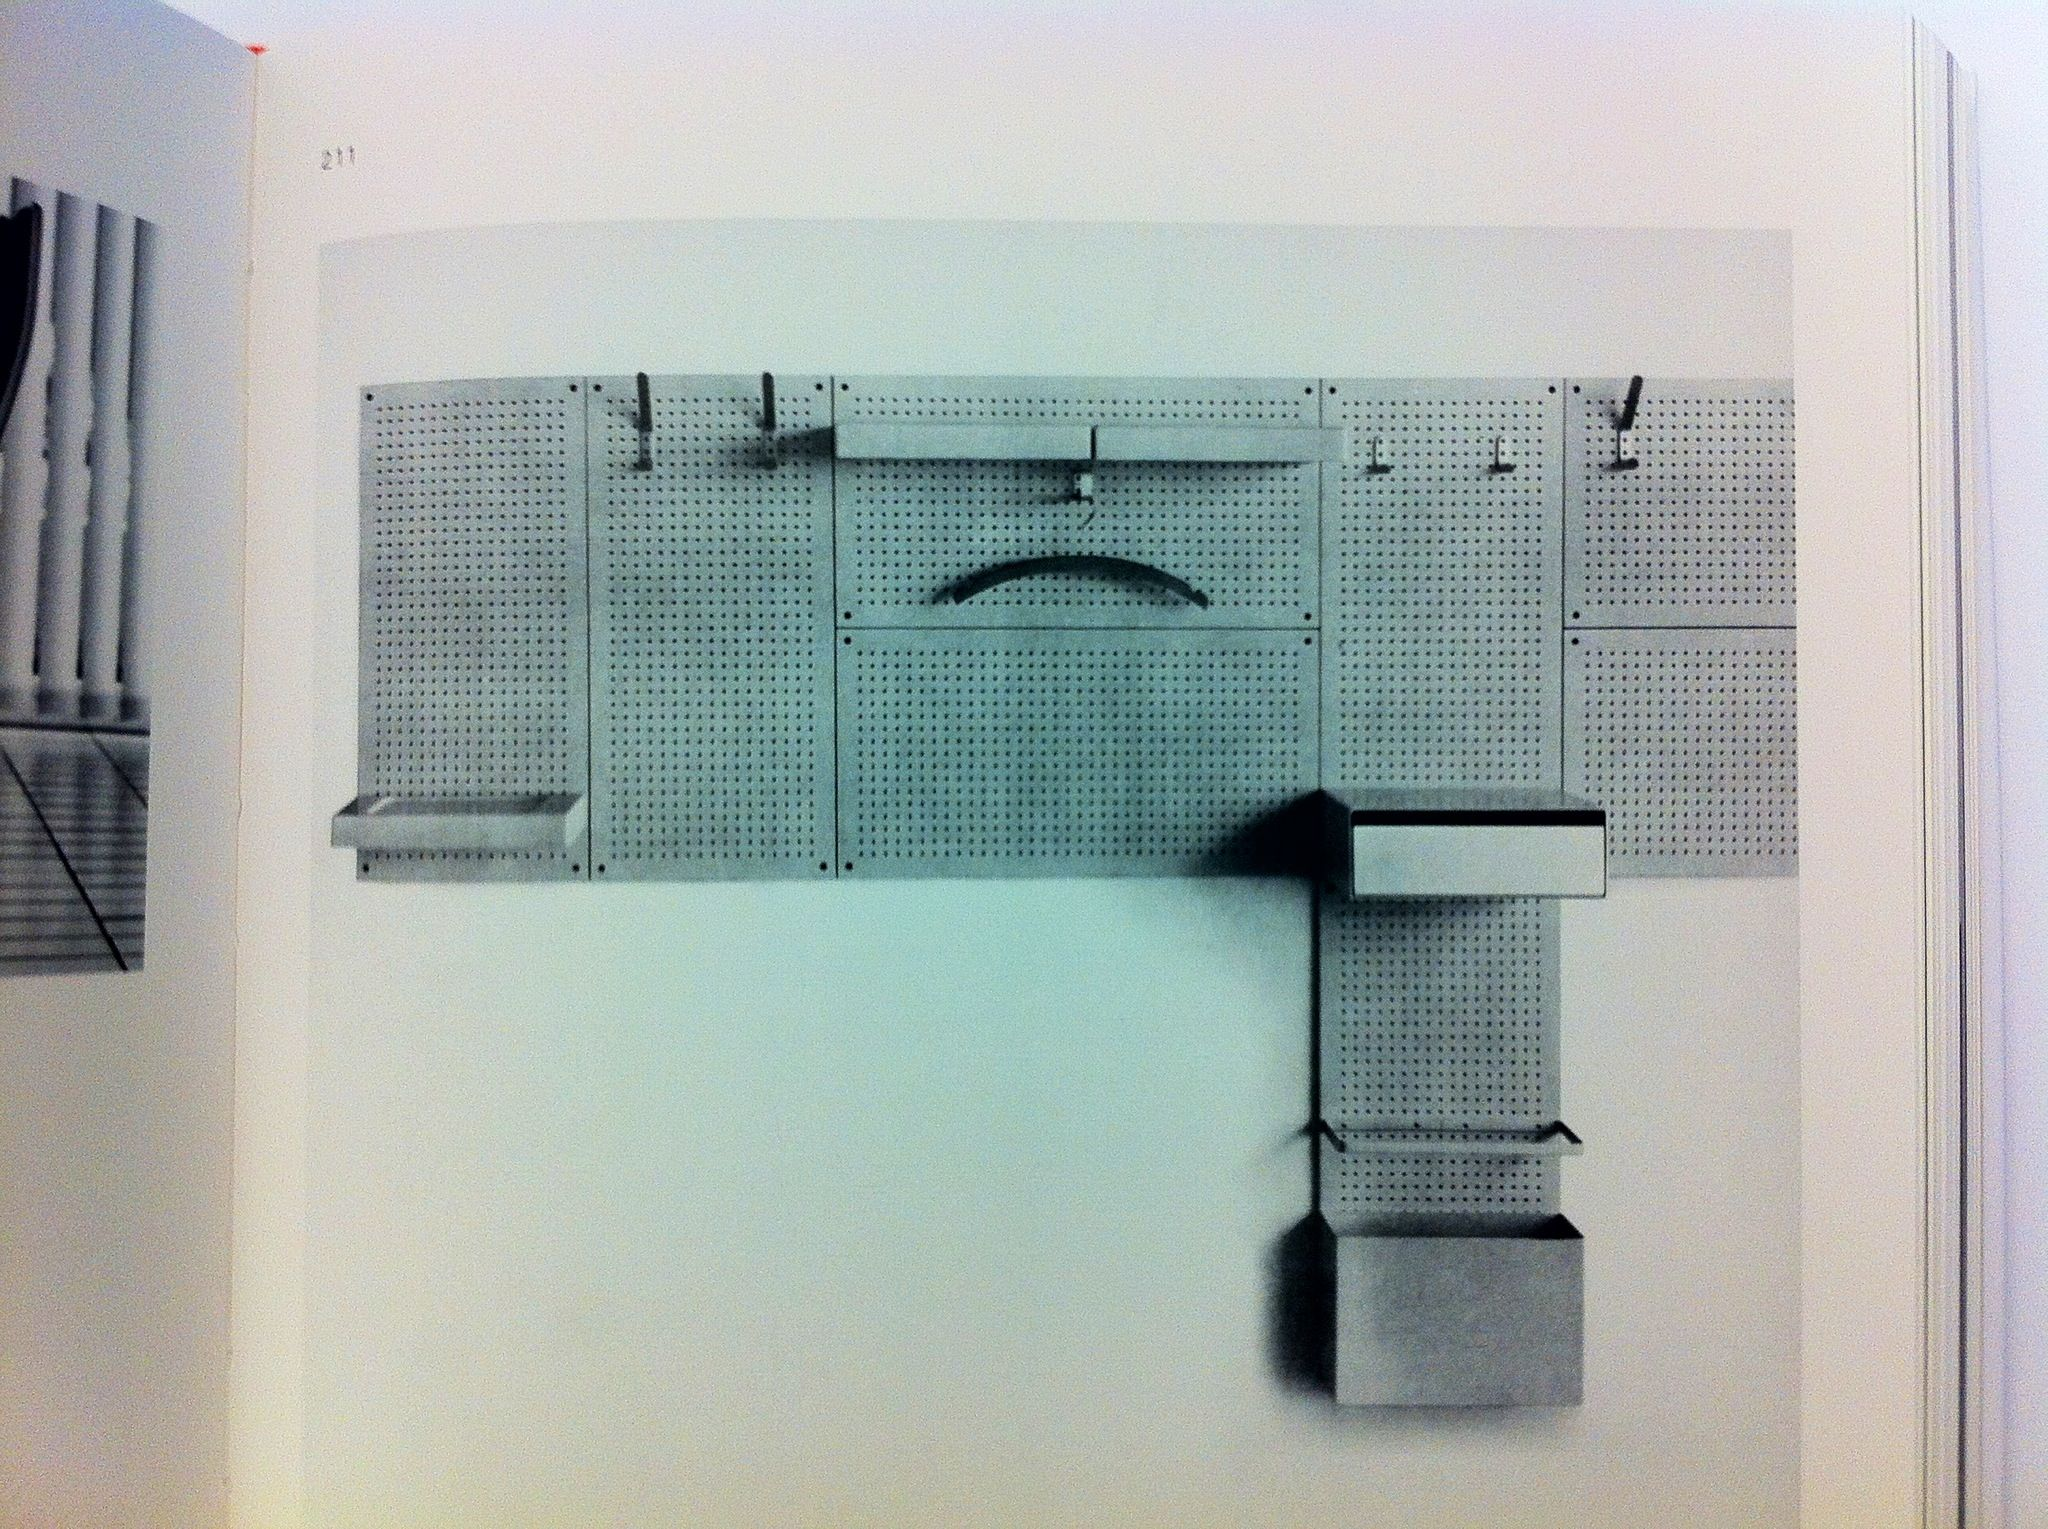 601 Wall Panel System Dieter Rams 1961 Wall Panel System Wall Paneling Panel Systems